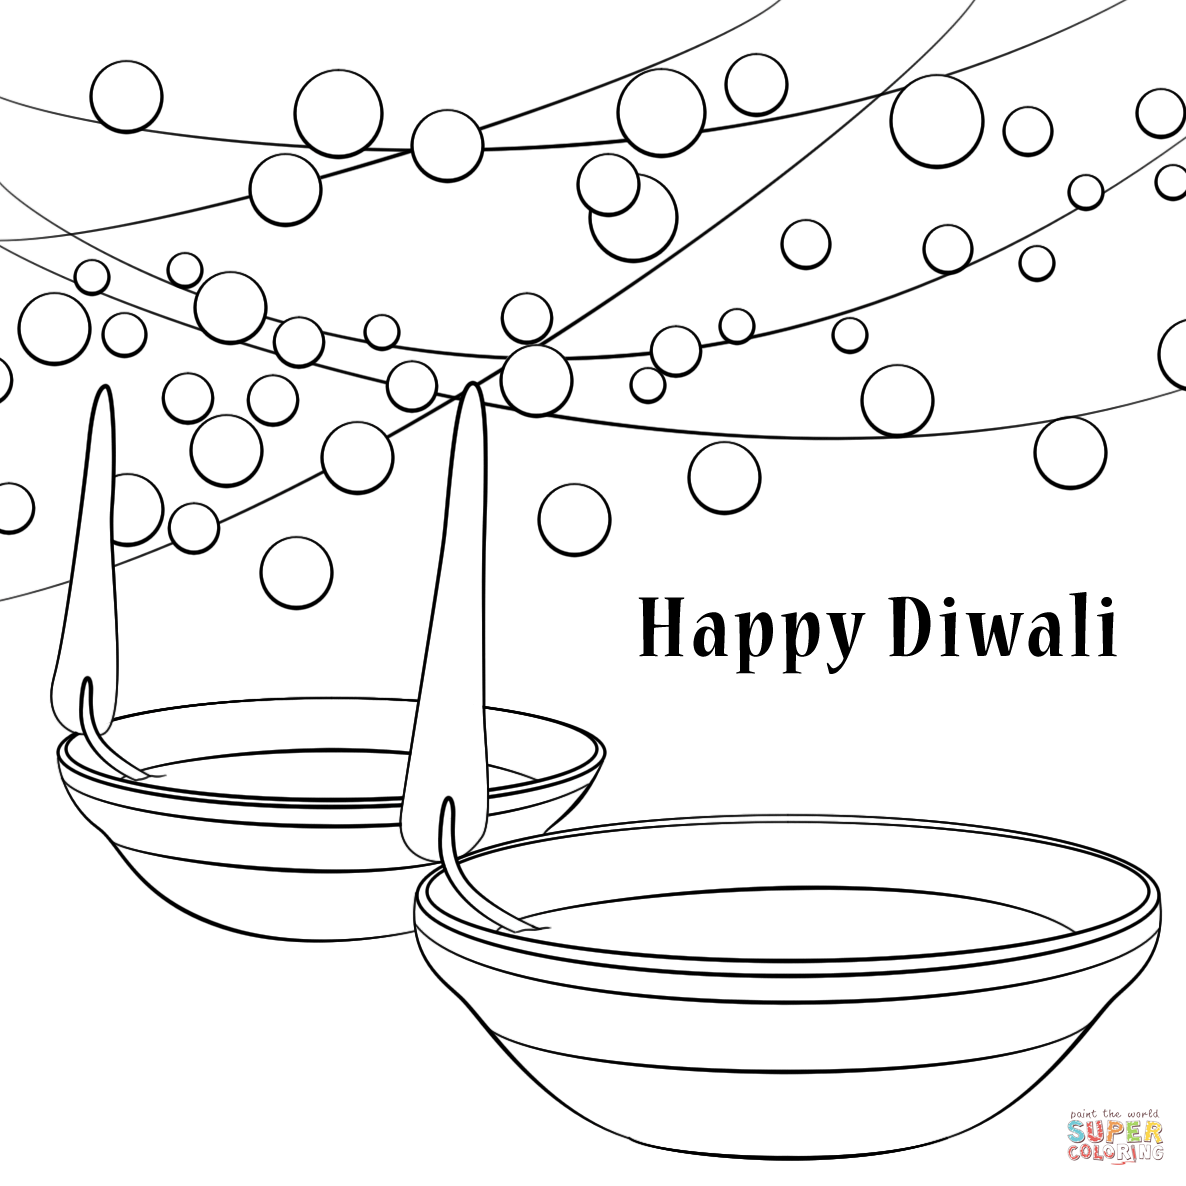 Diwali Coloring Pages